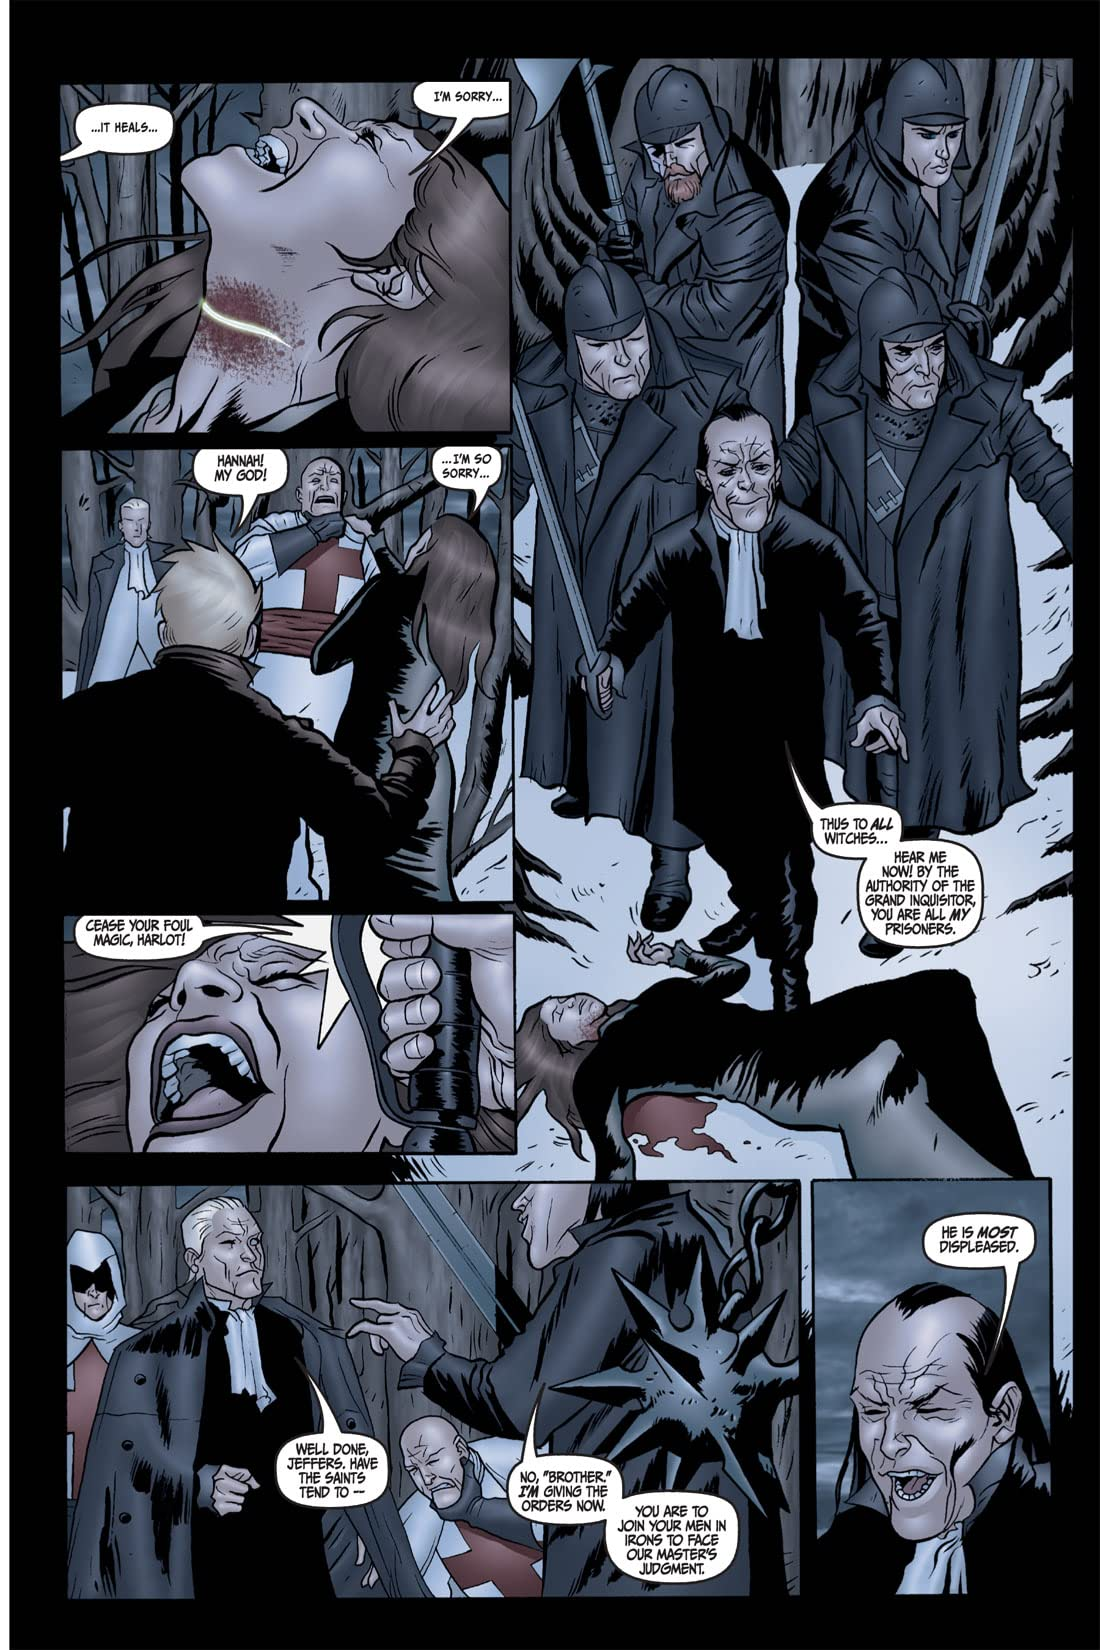 Salem: Queen of Thorns #2 (of 4)